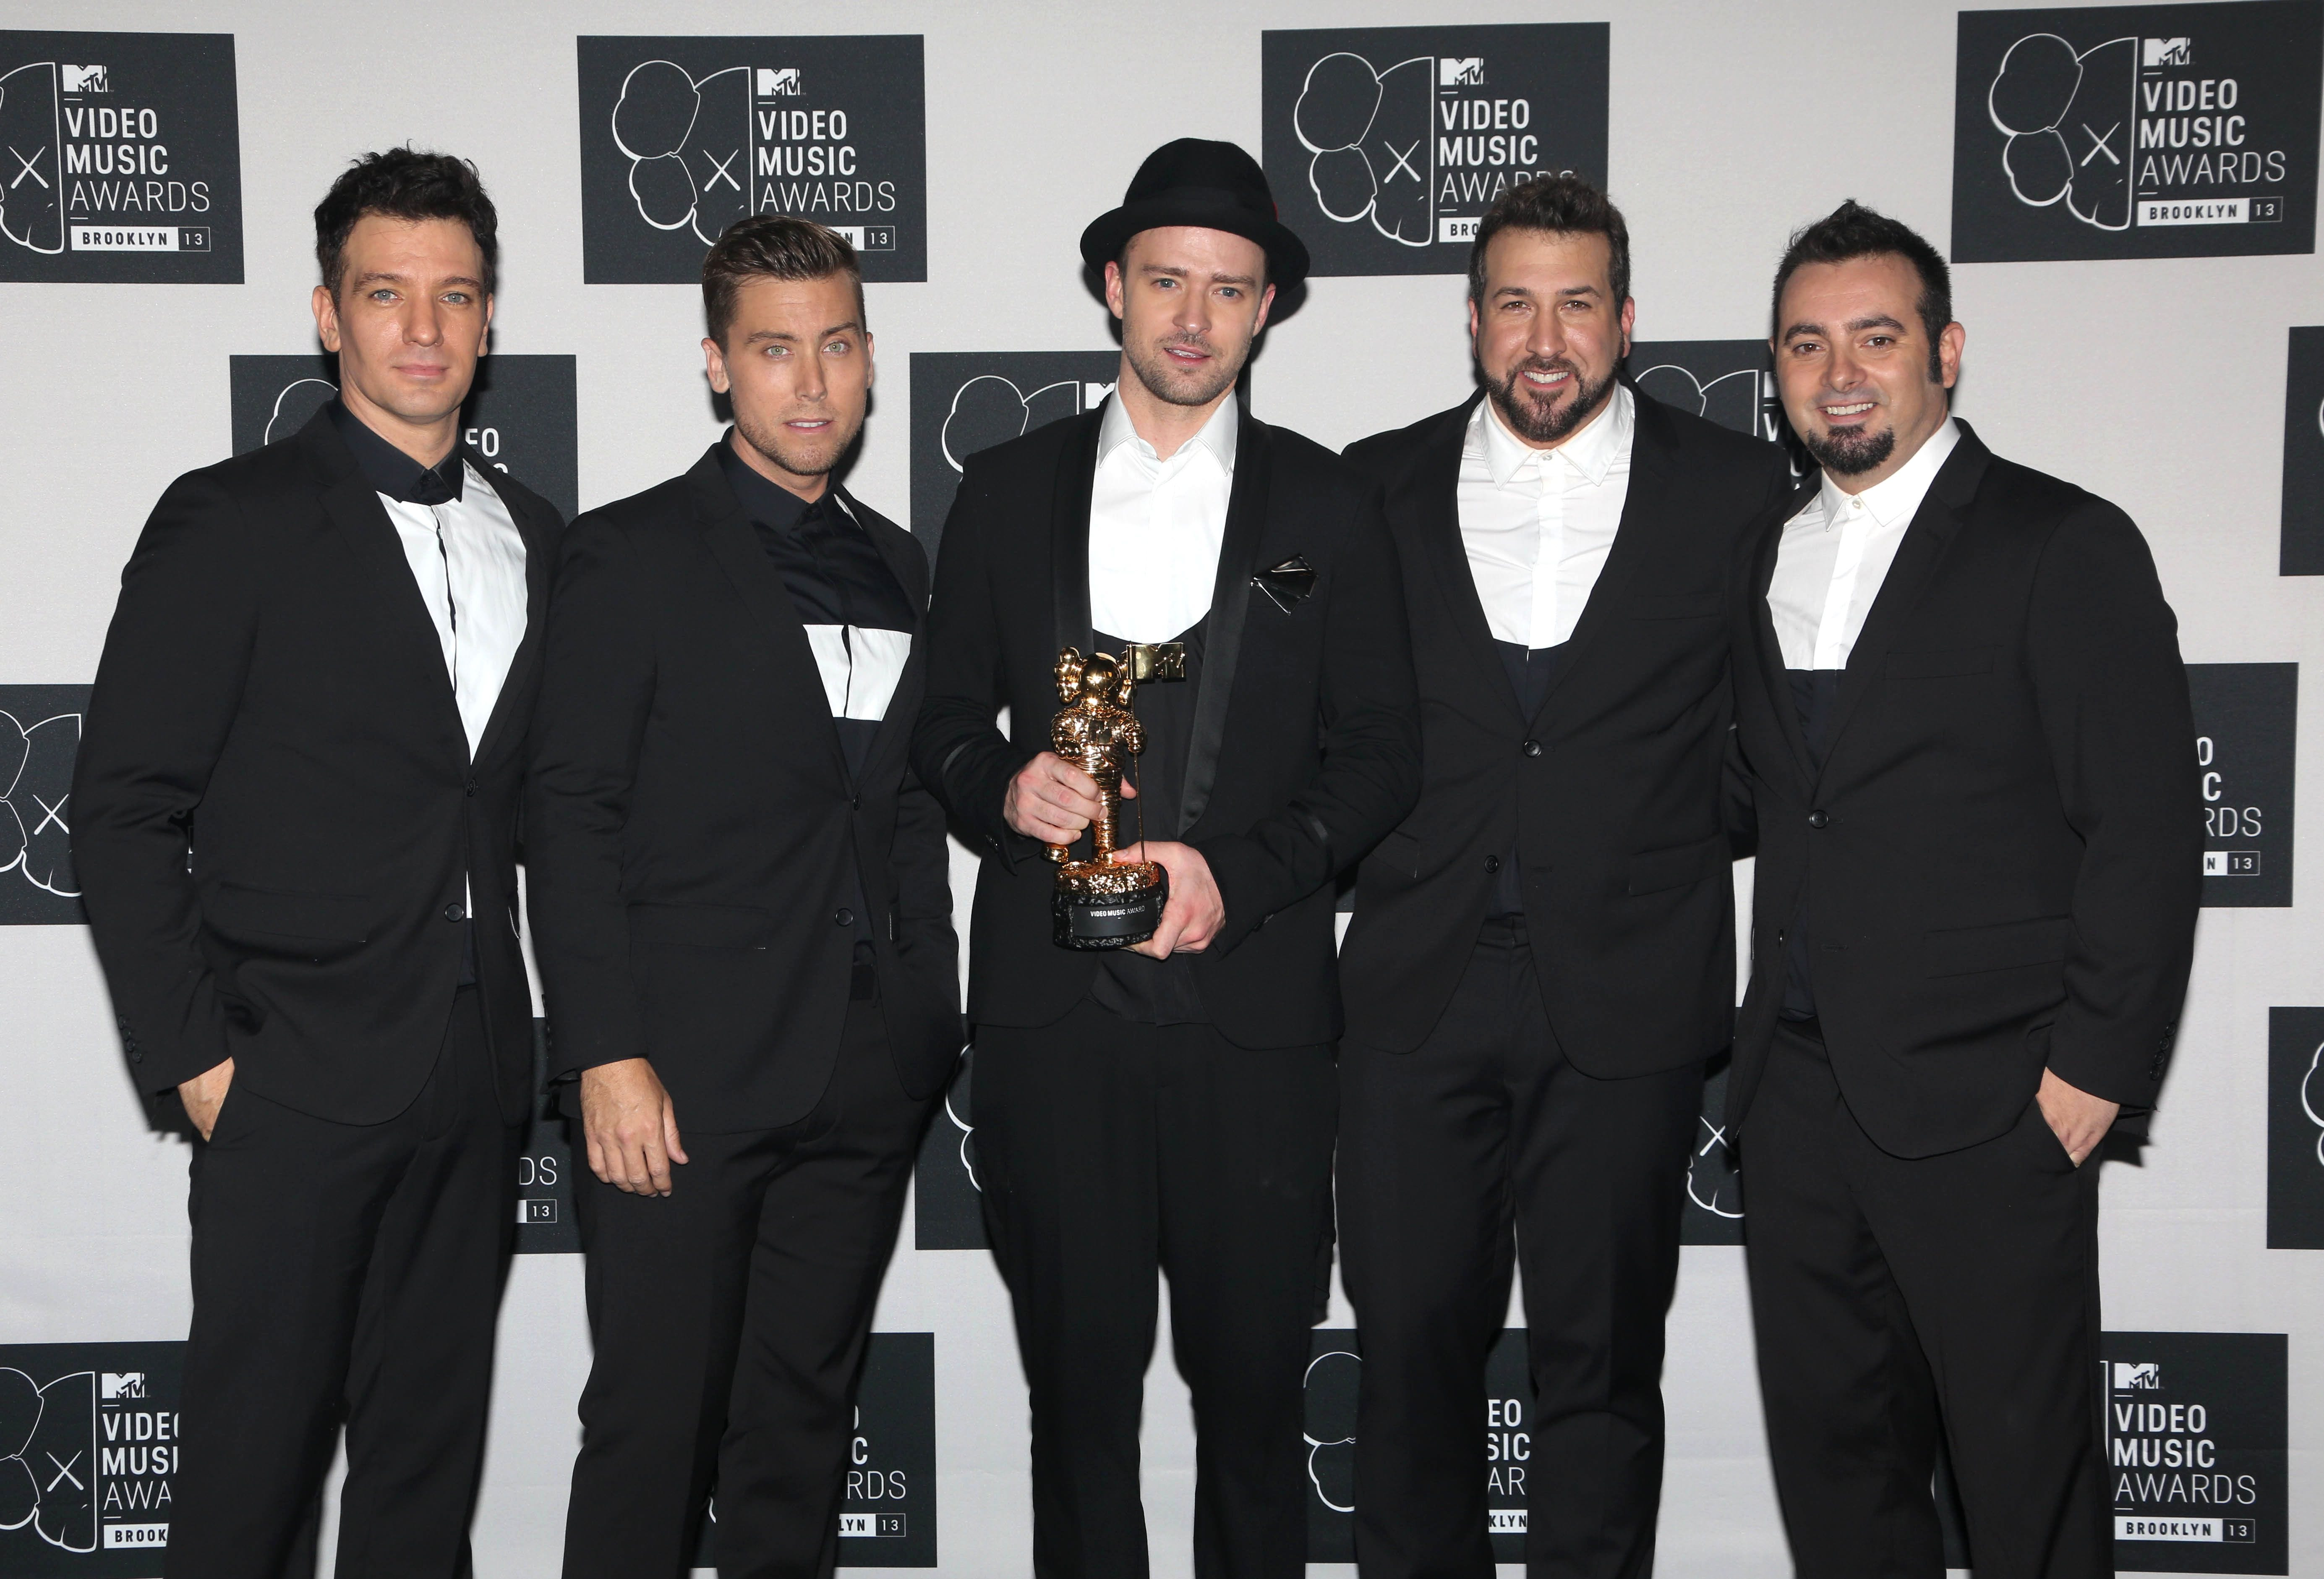 NSYNC Is Reuniting For A Walk of Fame Star